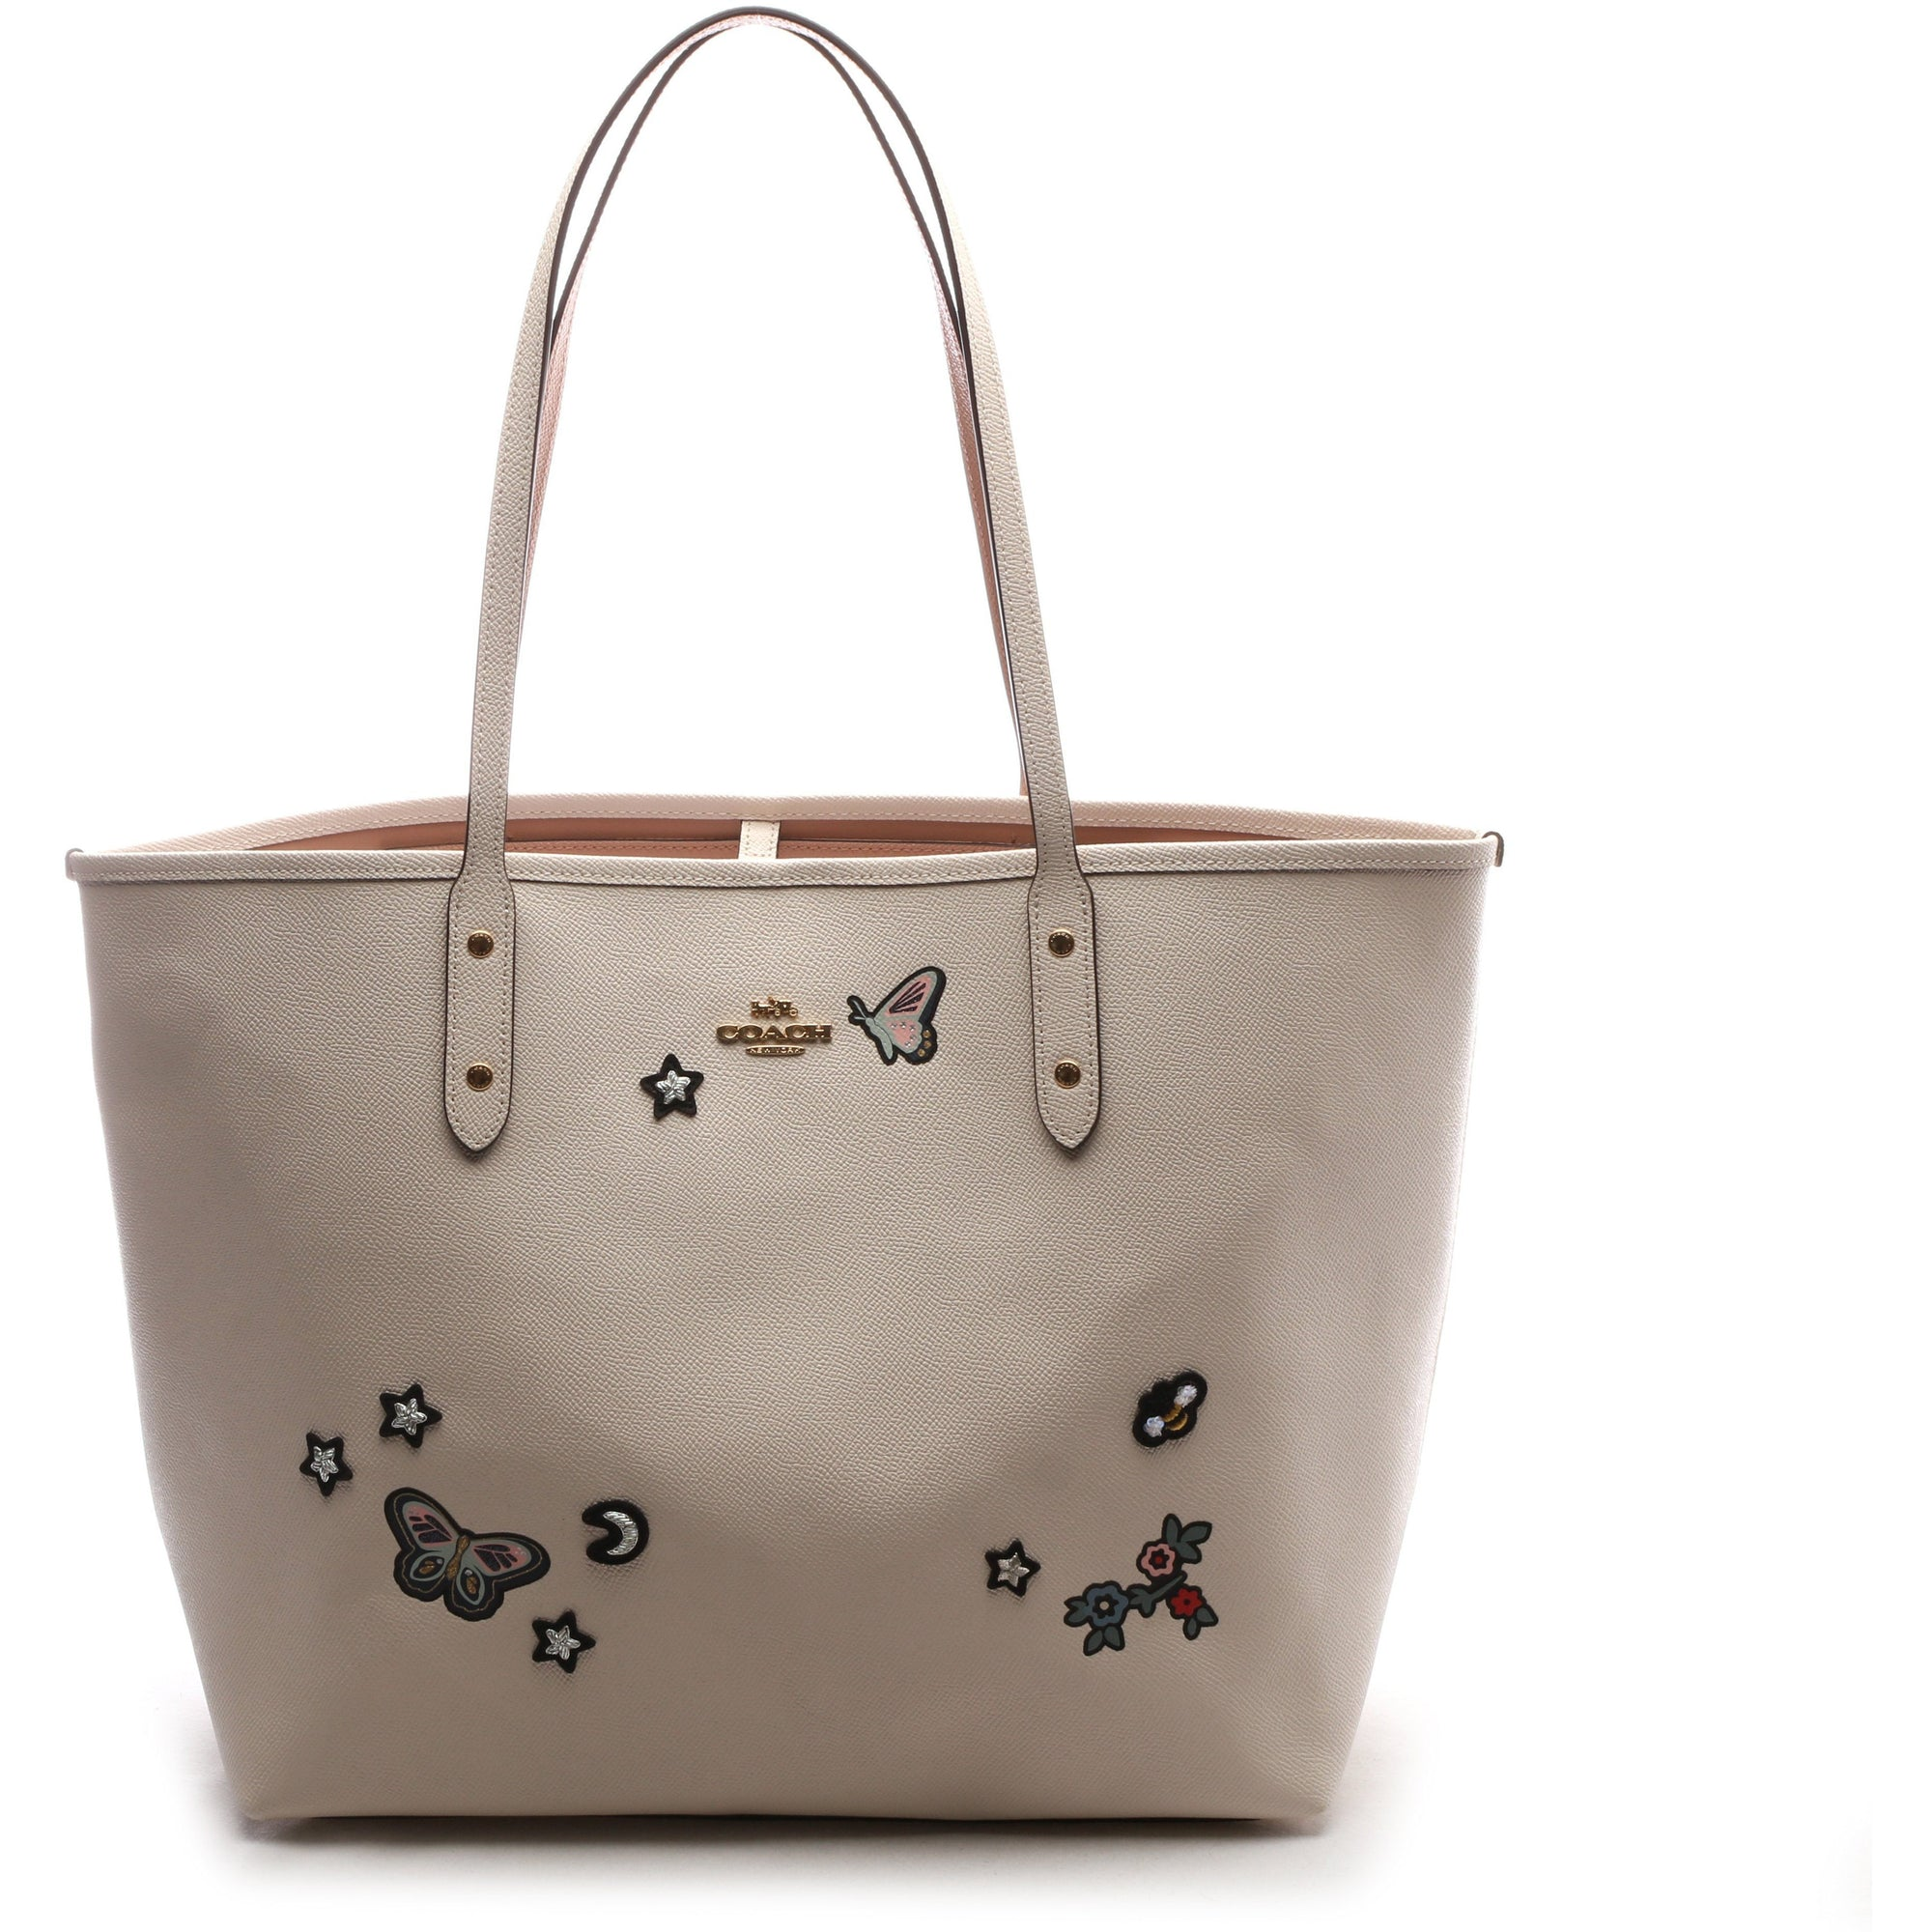 Coach City Tote With Souvenir Embroidery Leather Bag HANDBAG Coach